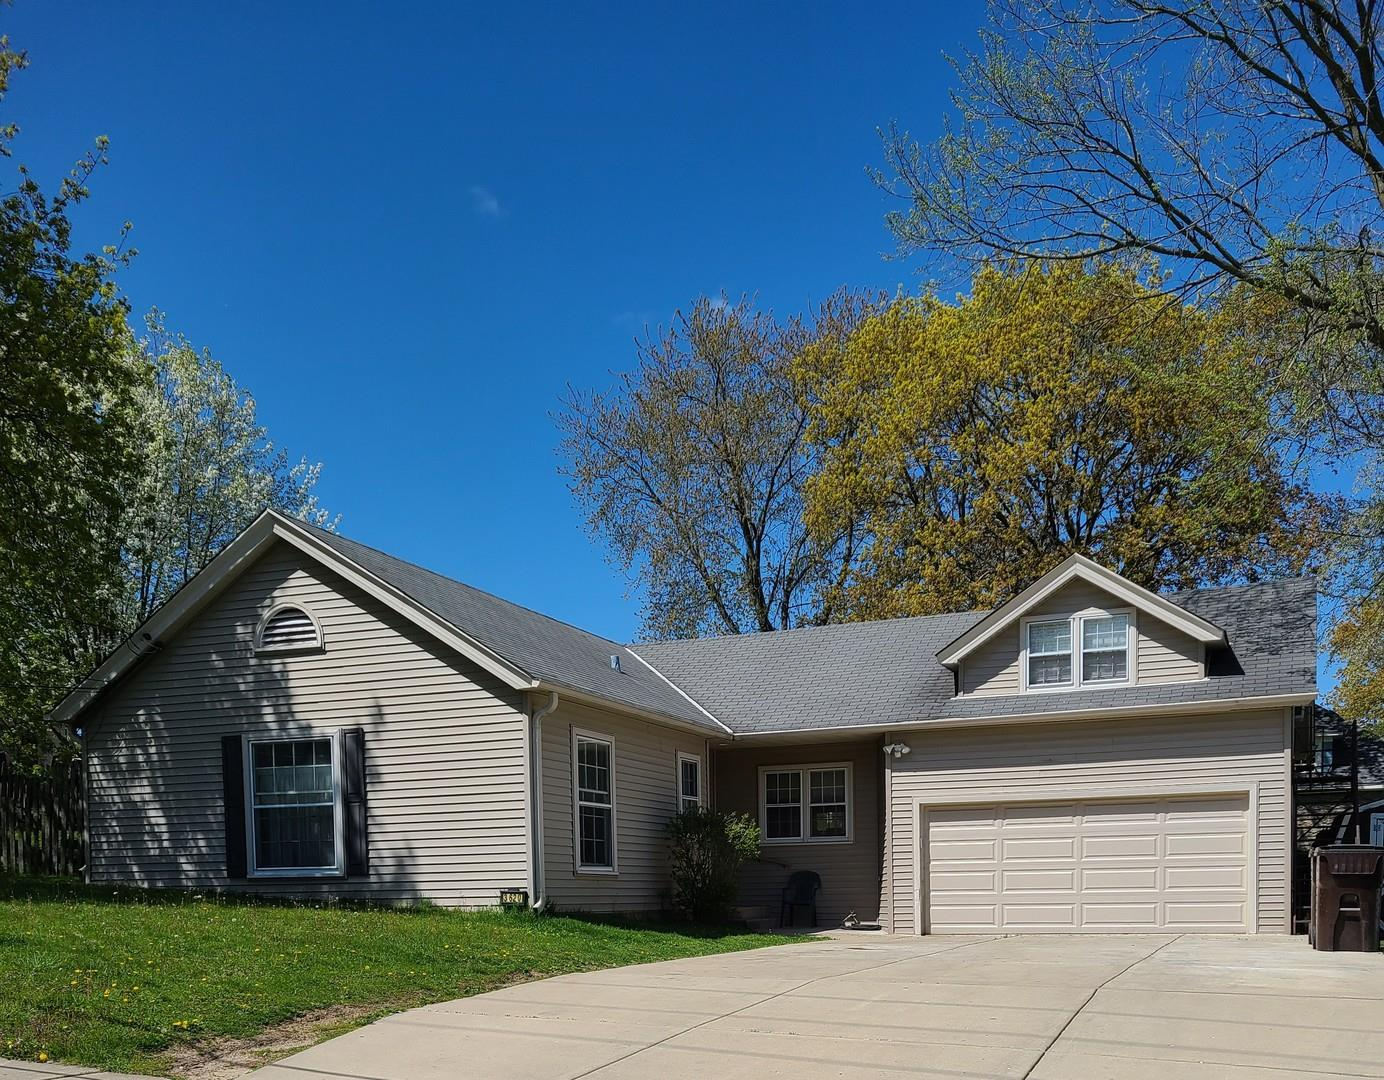 3620 Main Street, McHenry, IL 60050 - #: 10709958